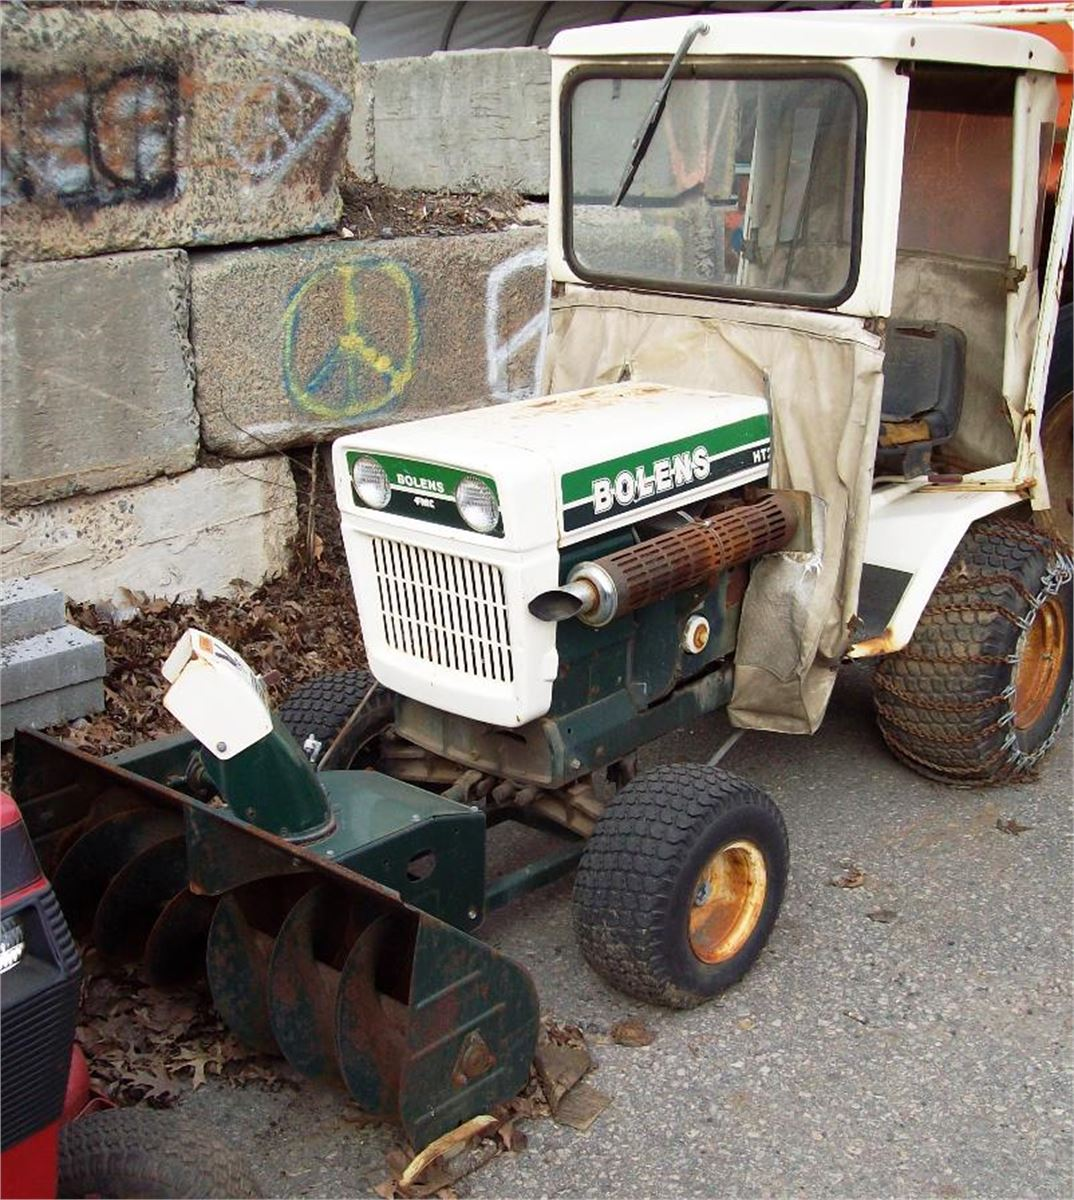 BOLENS MODEL# HT23 TRACTOR WITH SNOW THROWER ATTACHMENT